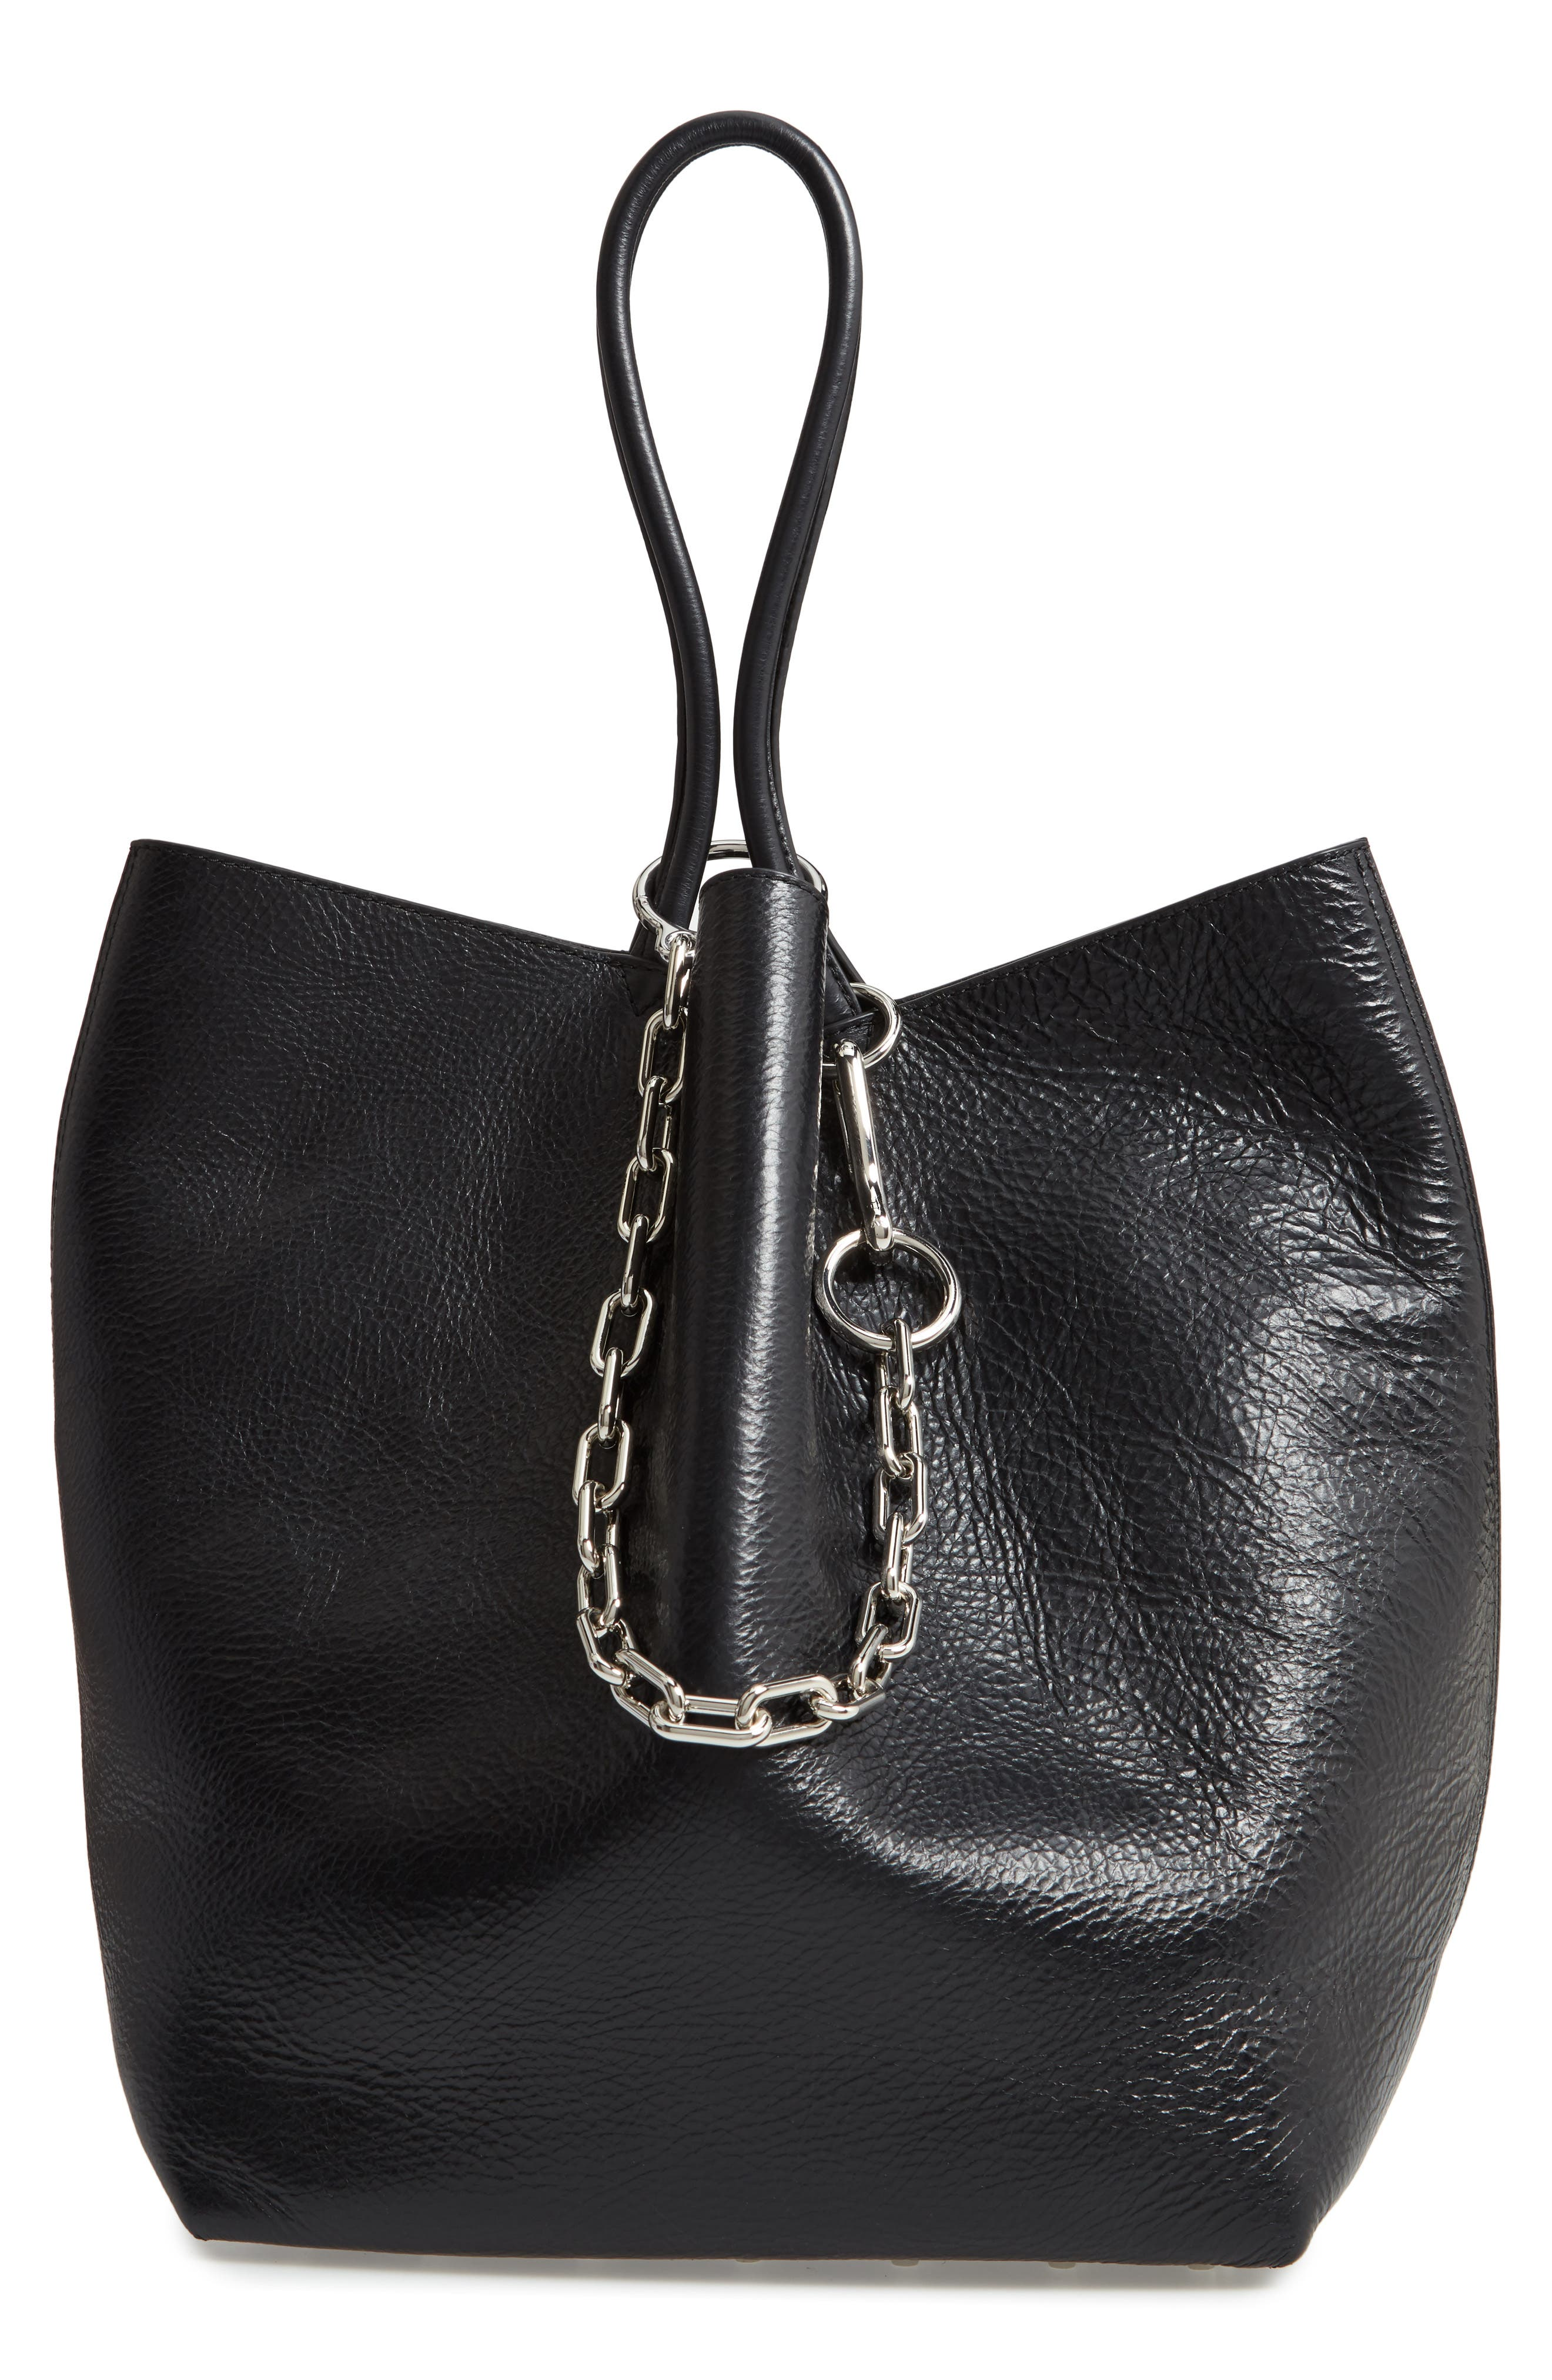 ALEXANDER WANG Large Roxy Leather Tote Bag, Main, color, BLACK